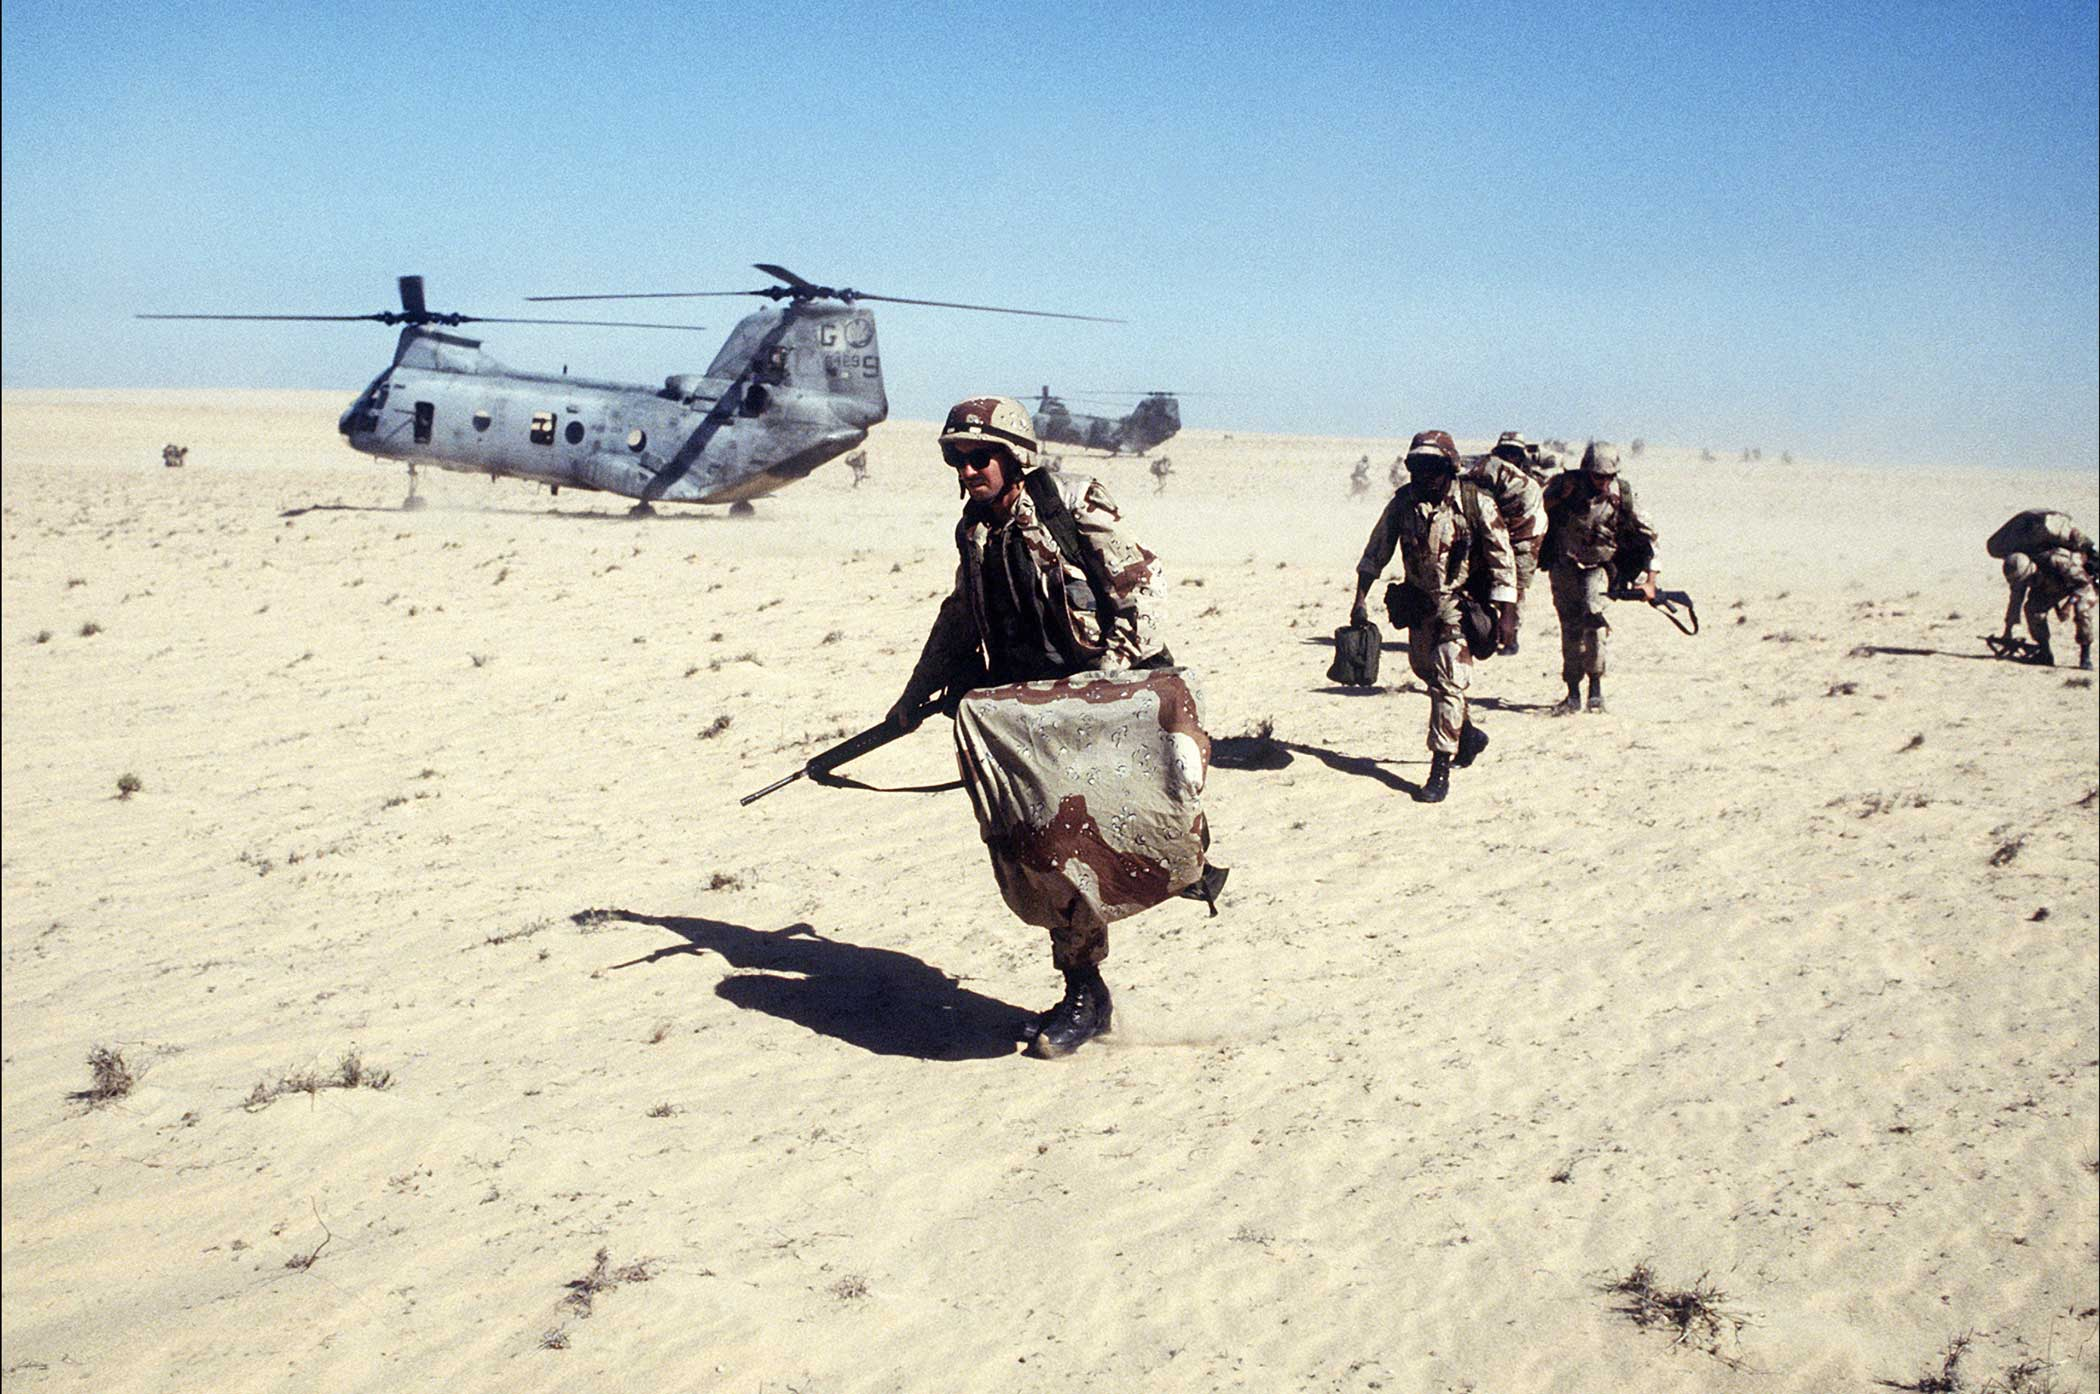 U.S. Marines assigned to the 2nd Marine Division's Charlie Company, 1st Battalion, move out on a mission after disembarking from a CH-46E Sea Knight helicopter during Exercise Imminent Thunder, part of Operation Desert Shield. Photo by Tech. Sgt. H.H. Deffner, courtesy of U.S. Air Force.